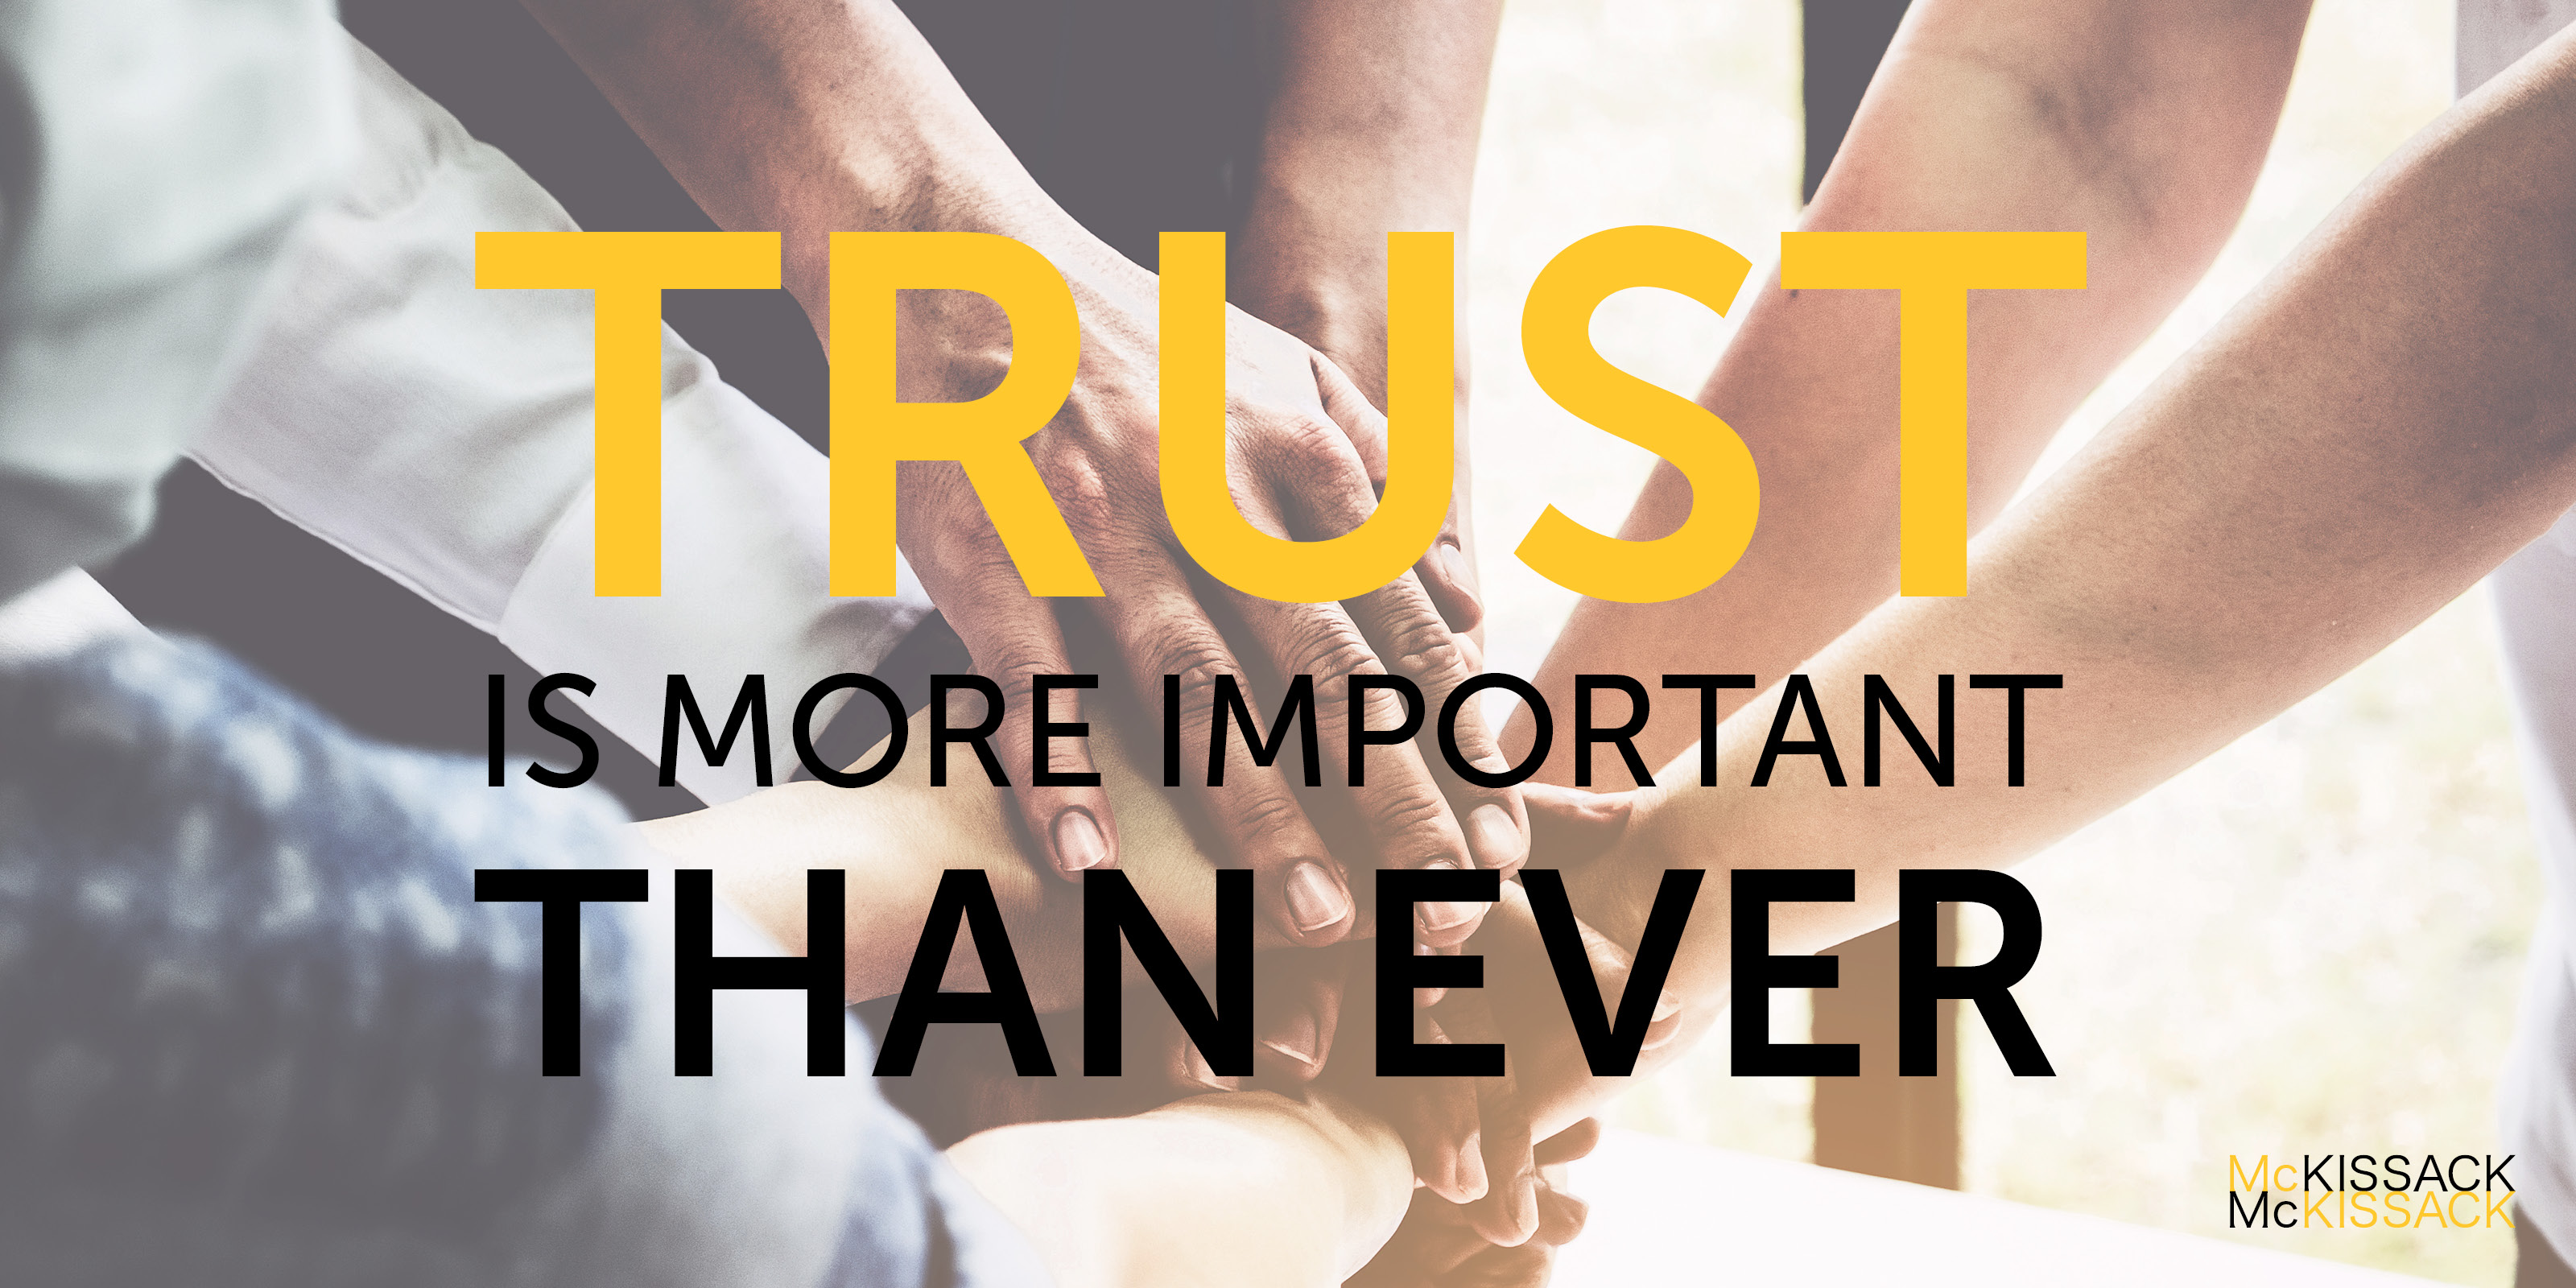 Trust matters more than ever in a design and construction services industry dealing with crisis conditions; these 5 building blocks can foster teamwide trust.